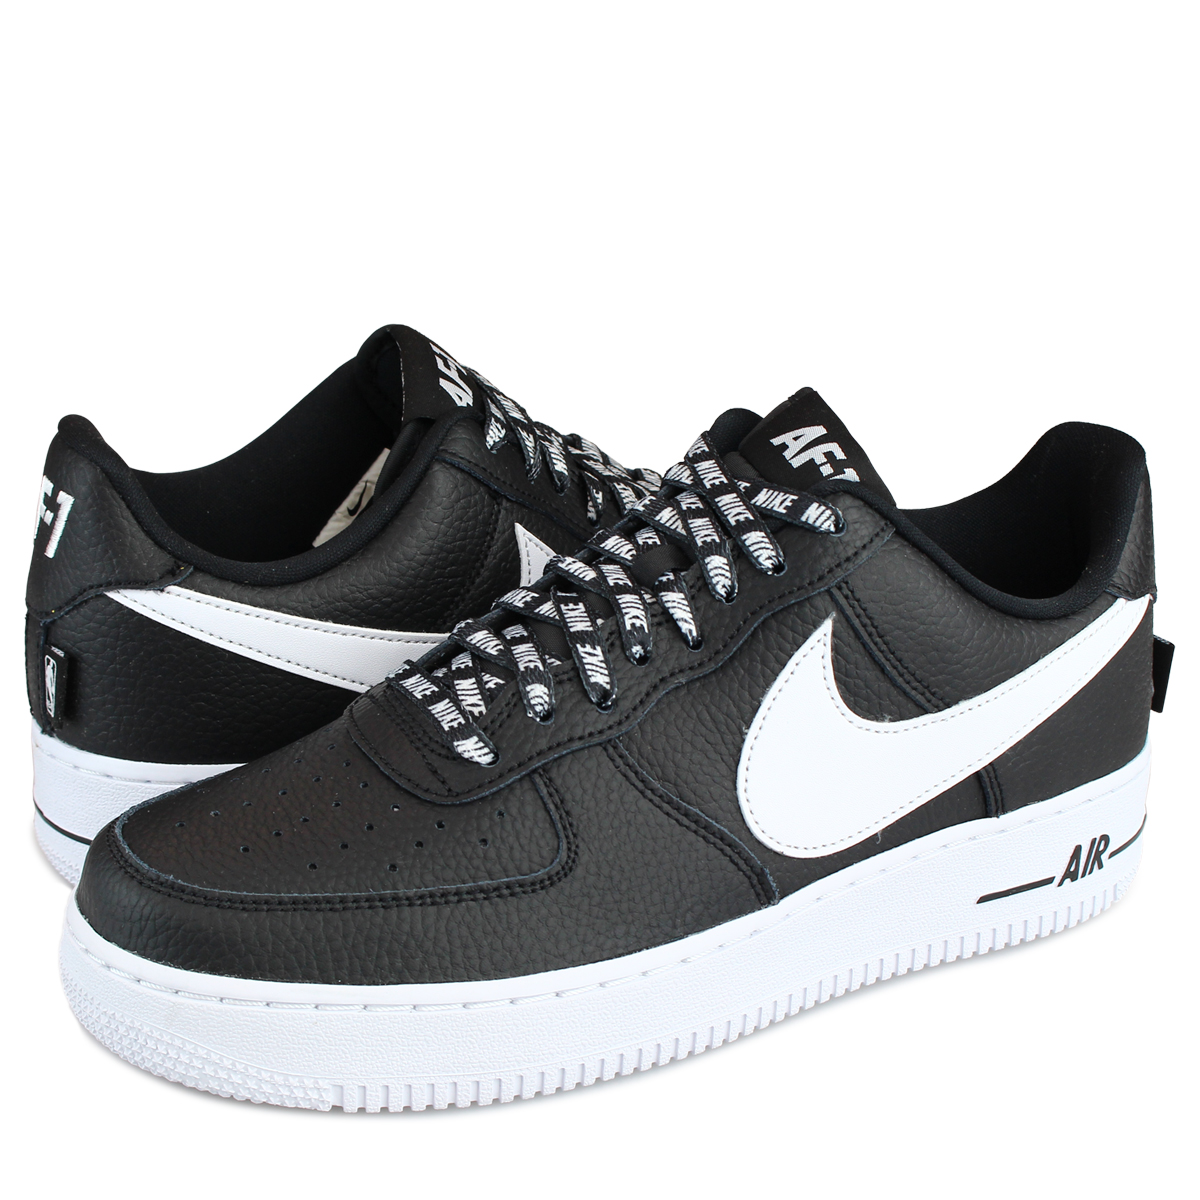 the latest 0a7cb 7dba1 NIKE AIR FORCE 1 STATEMENT GAME Nike air force 1 07 LV8 sneakers  823,511-007 men's shoes black white [load planned Shinnyu load in  reservation product ...